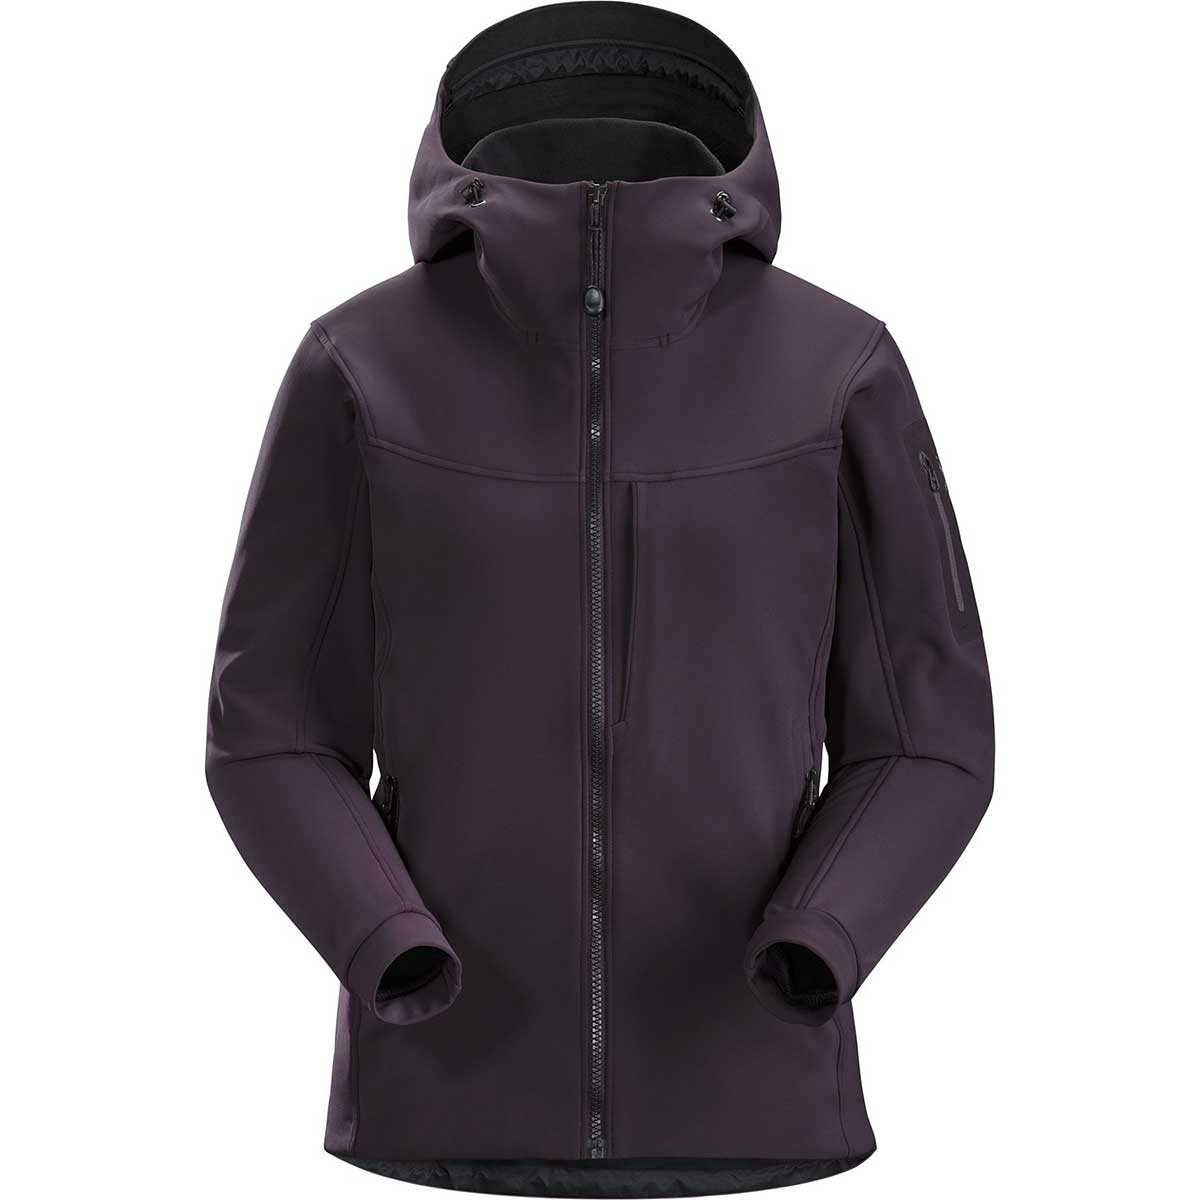 Arcteryx women's Gamma MX Hoody in Dimma front view